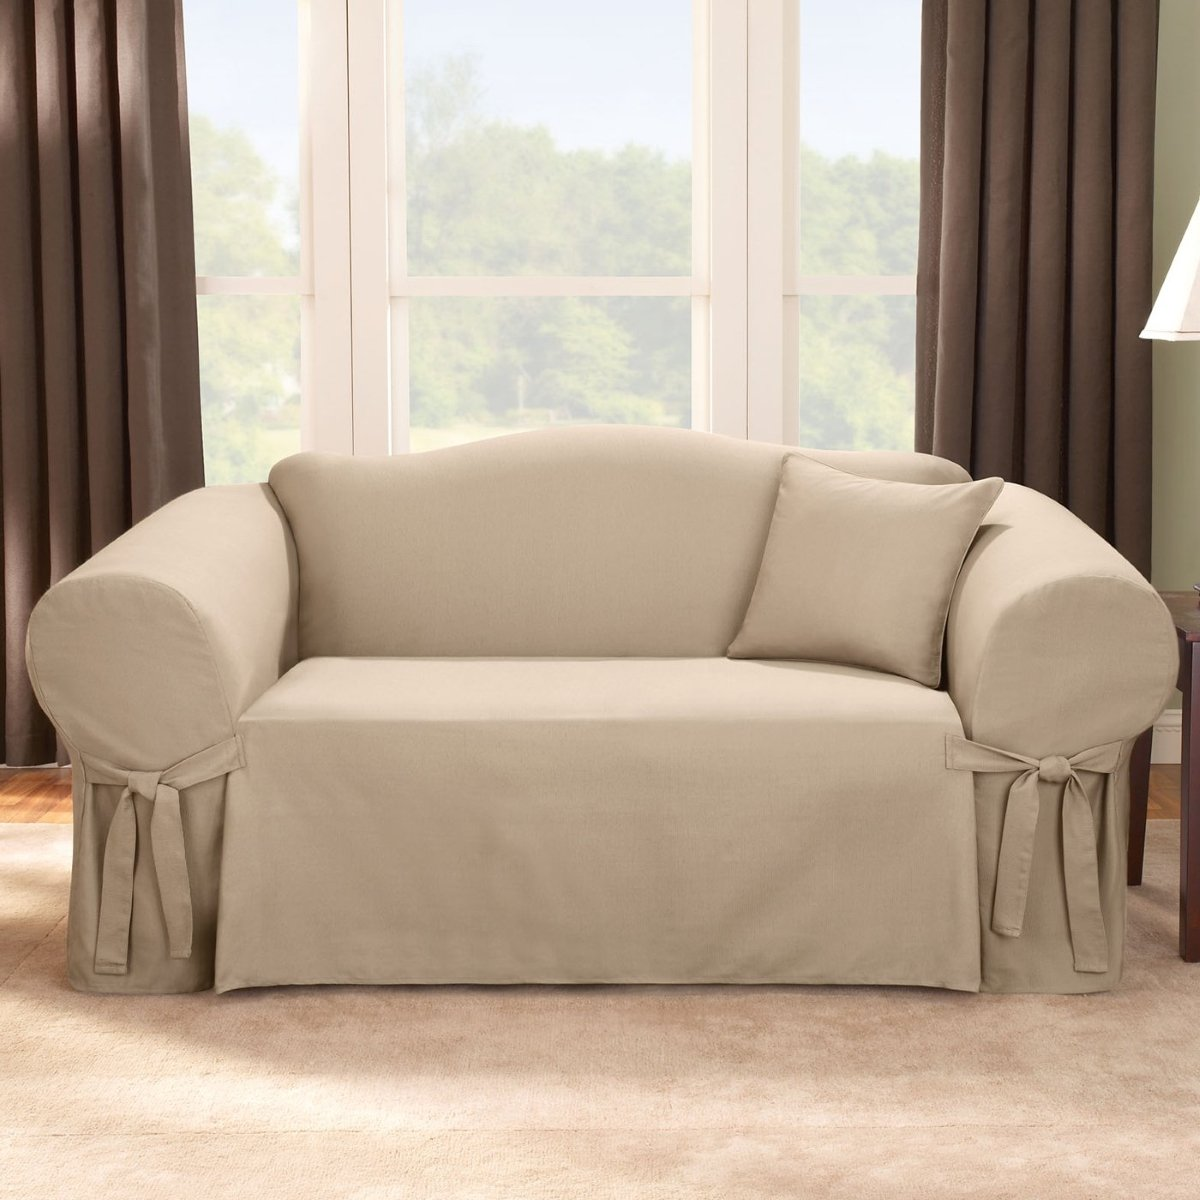 Sure Fit Slipcovers Target  Home Furniture Design